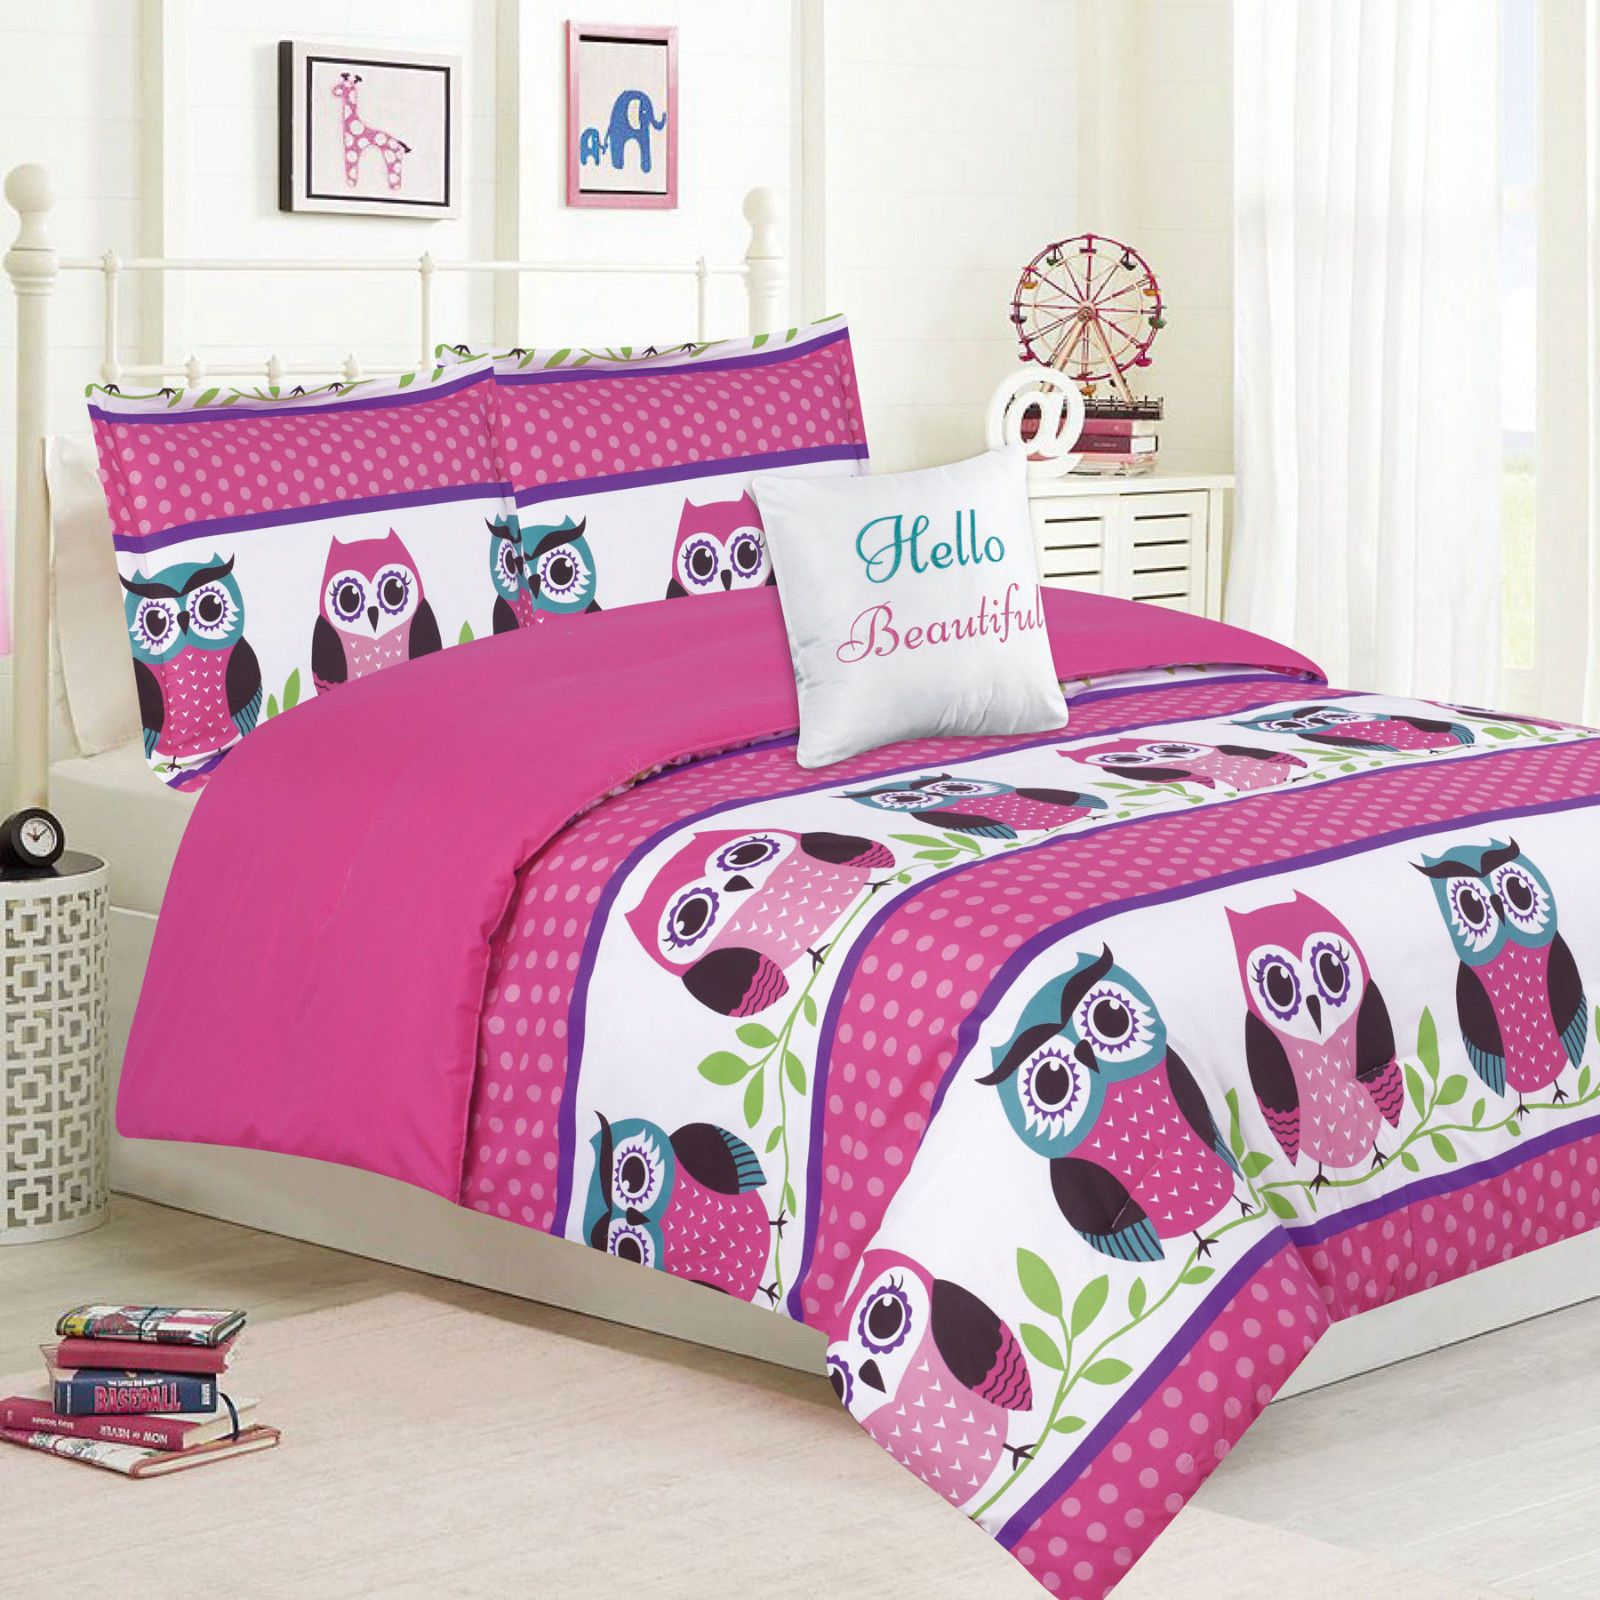 Comforters And Sets 66728 Girls Bedding Twin Or Queen Comforter Bed